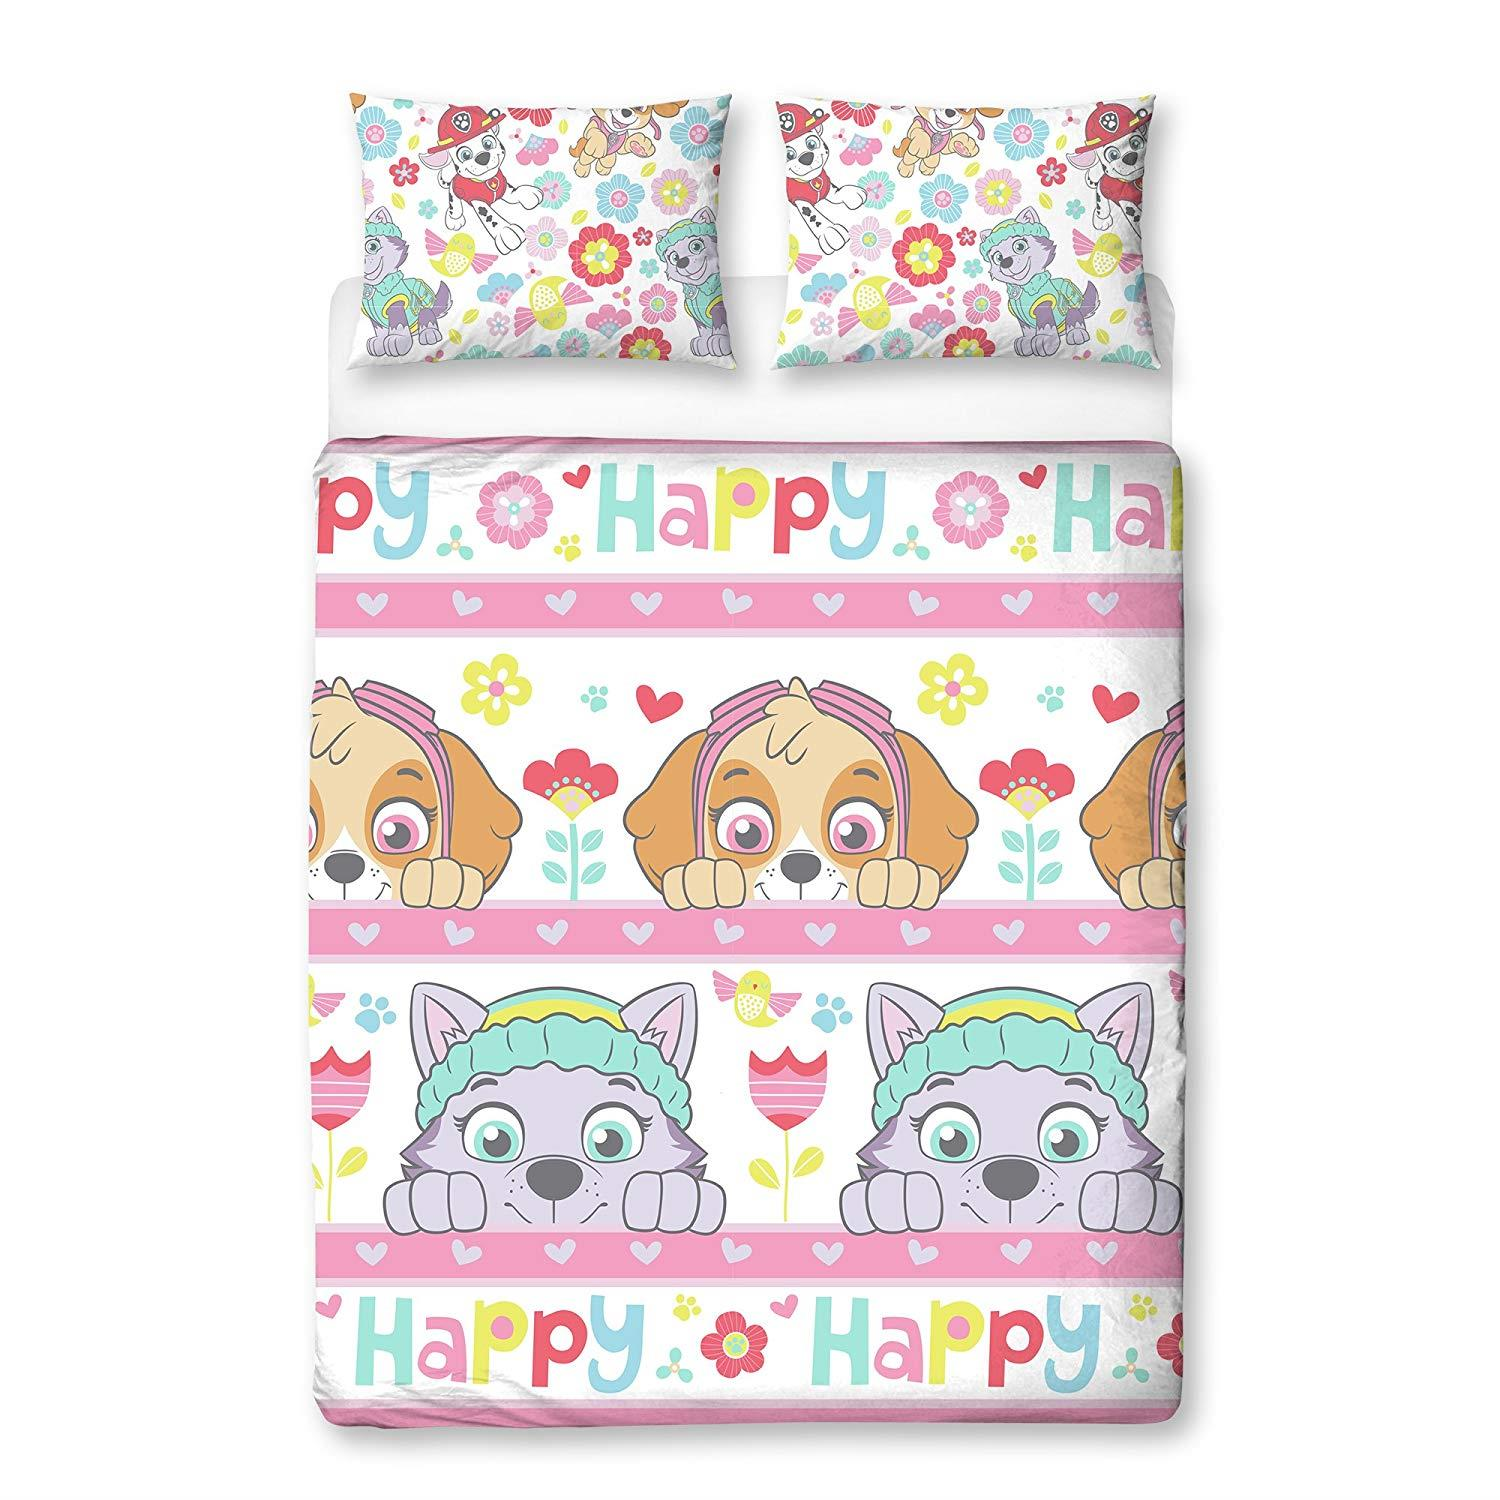 Official-Paw-Patrol-Licensed-Duvet-Covers-Single-Double-Chase-Skye-Marshall thumbnail 7